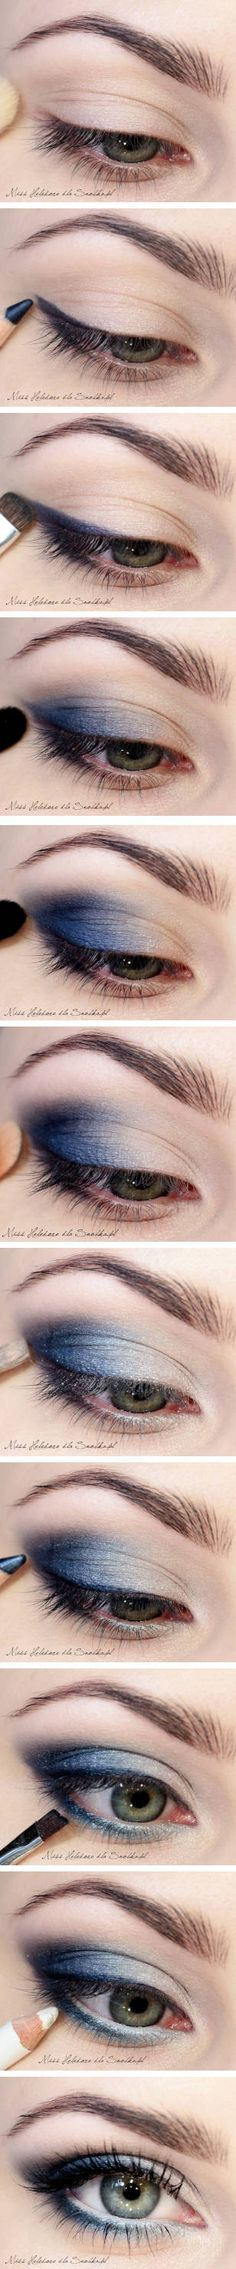 #smokyeye with the new blue #eyeshadow trend!